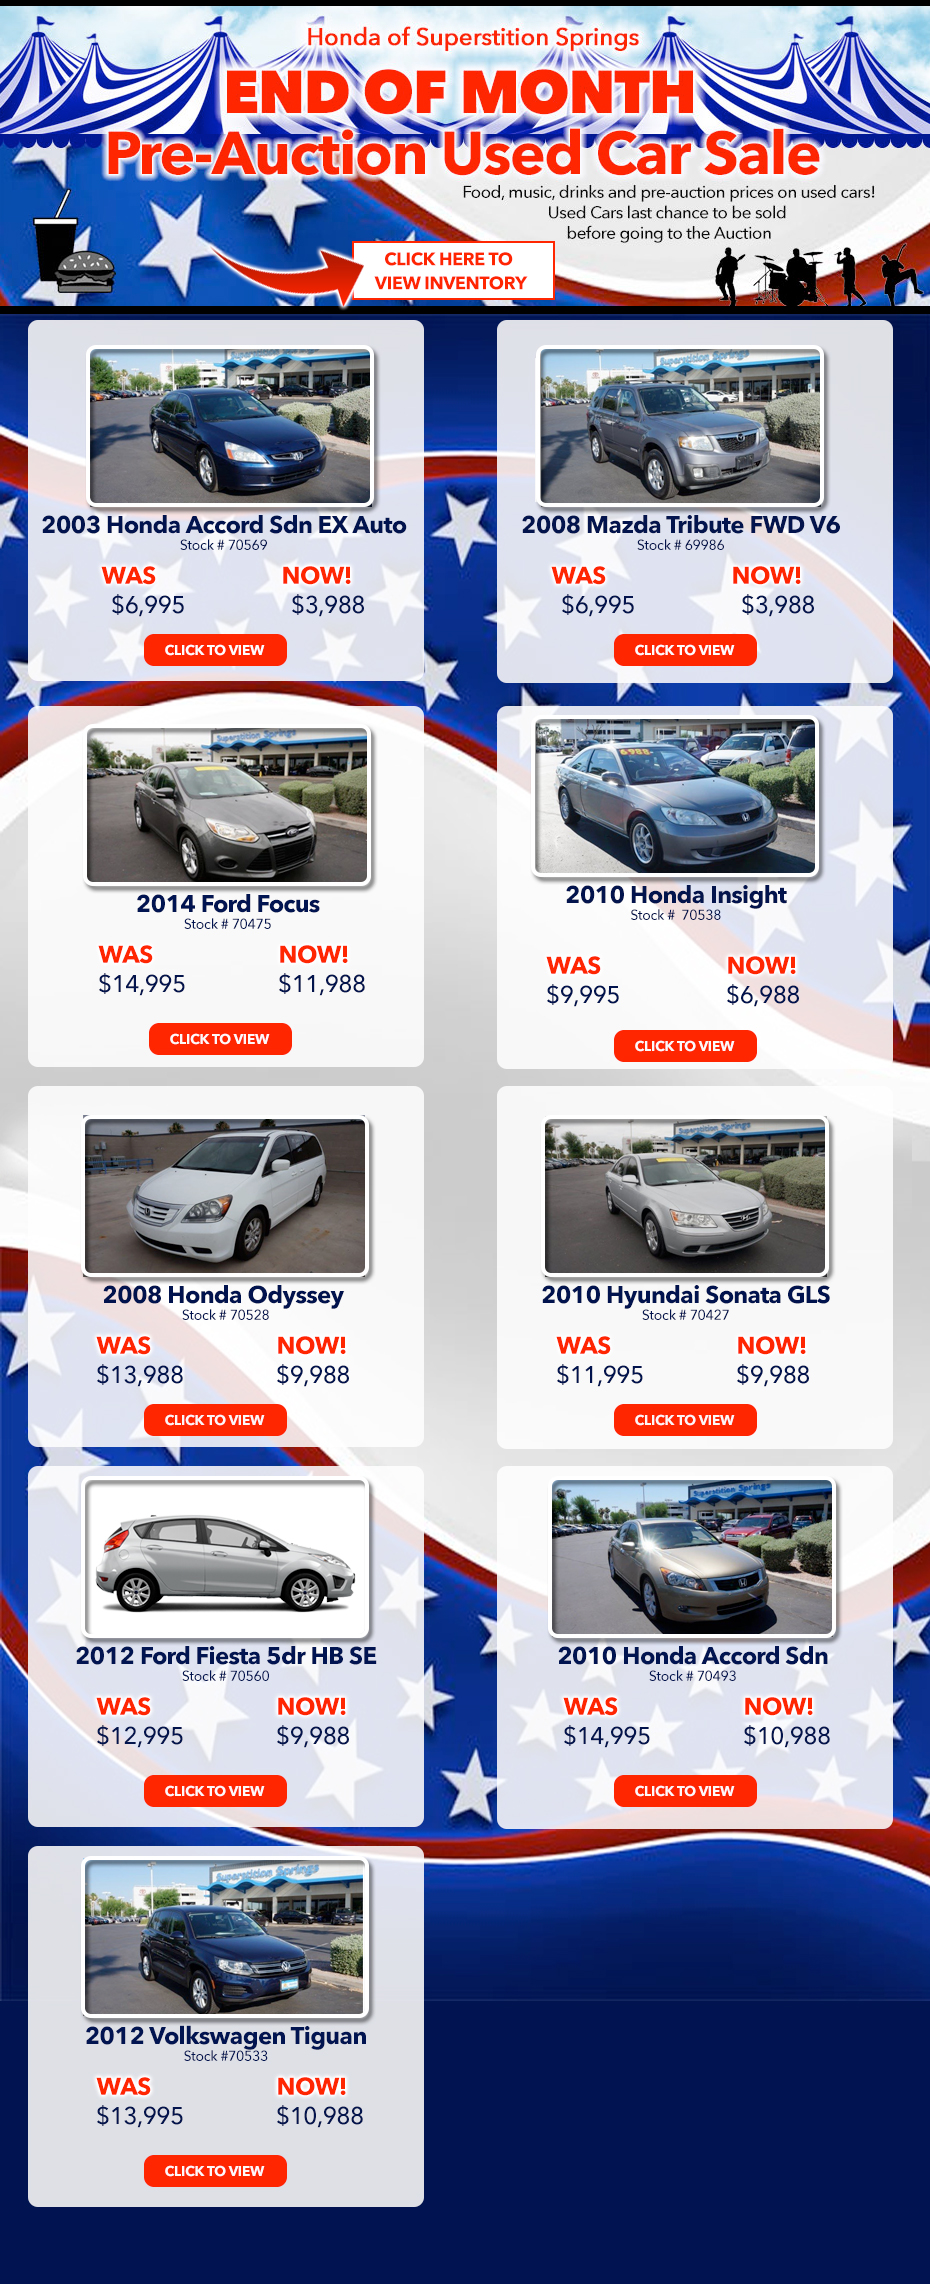 research dealership mesa large frost groovecar se alpine hyundai awd suv tucson limited composite az